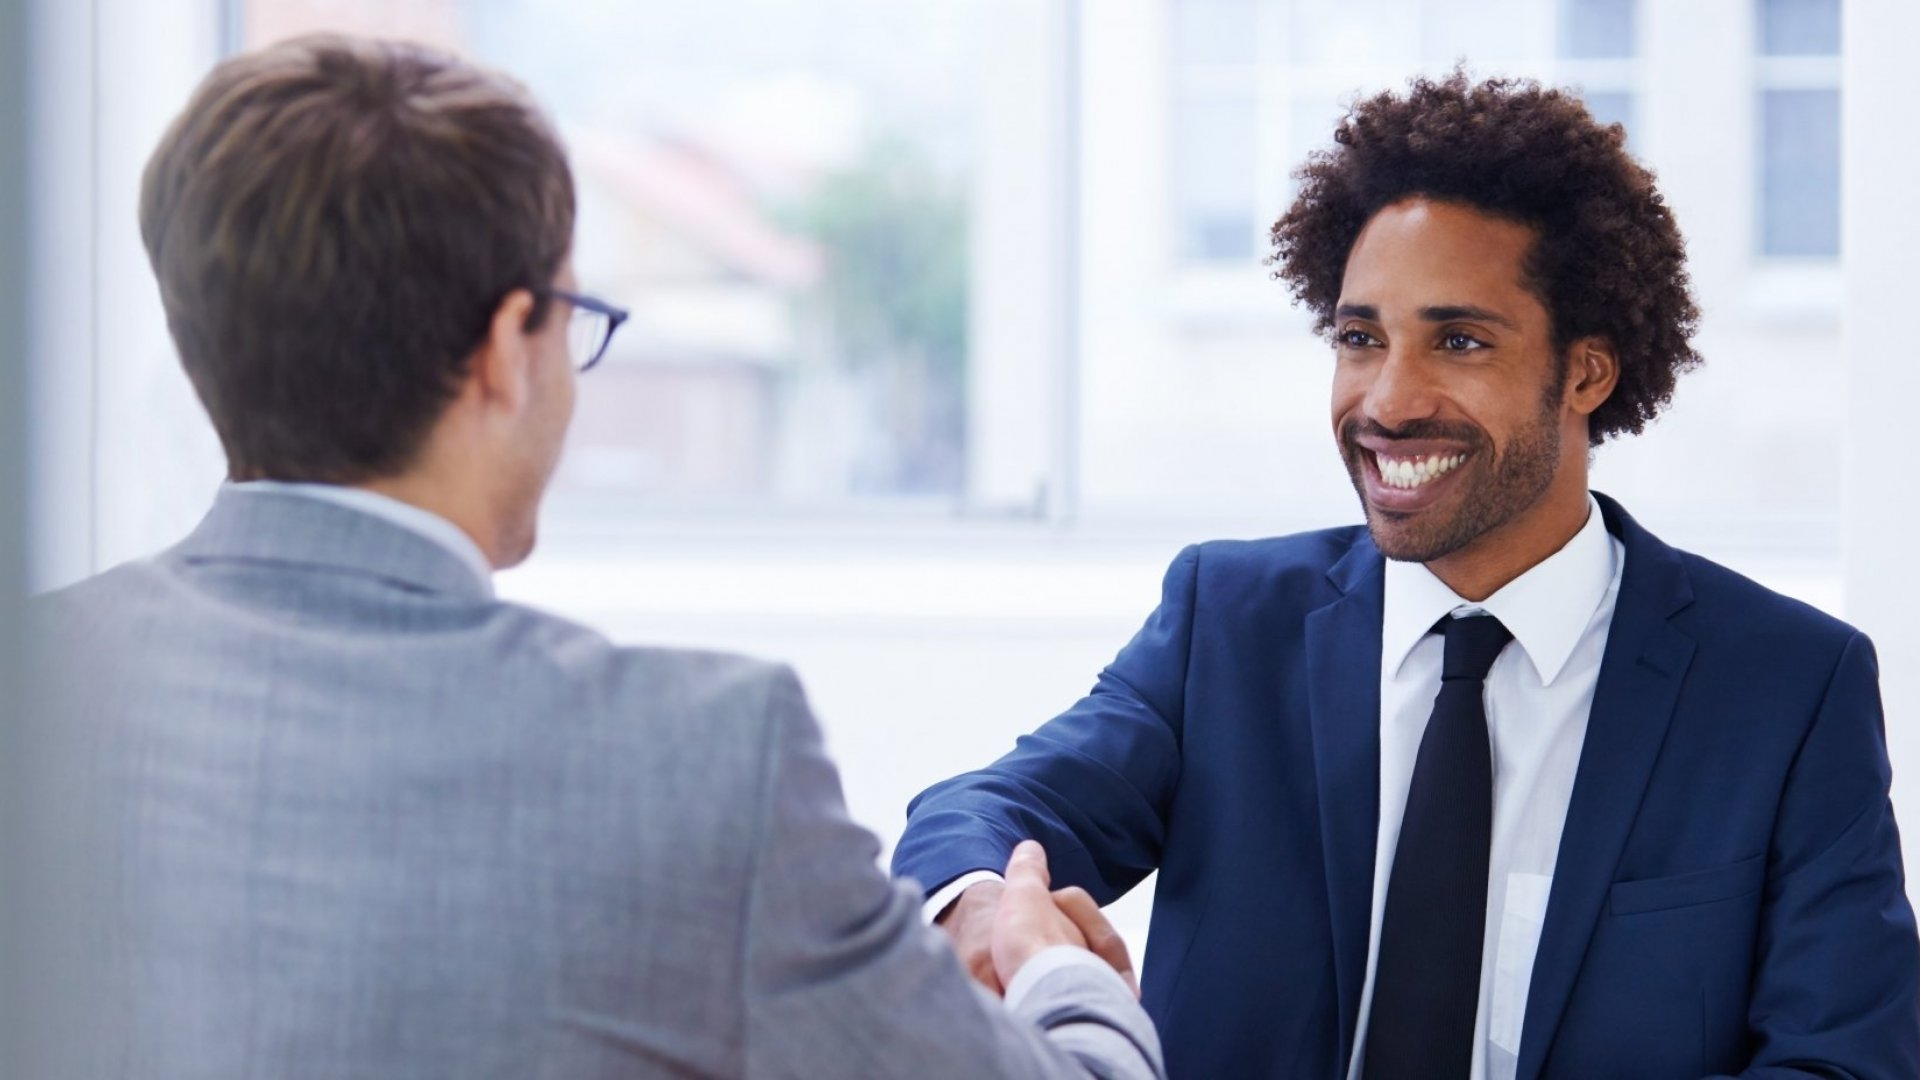 Interviews are about much more than just proving you're the right person for the job